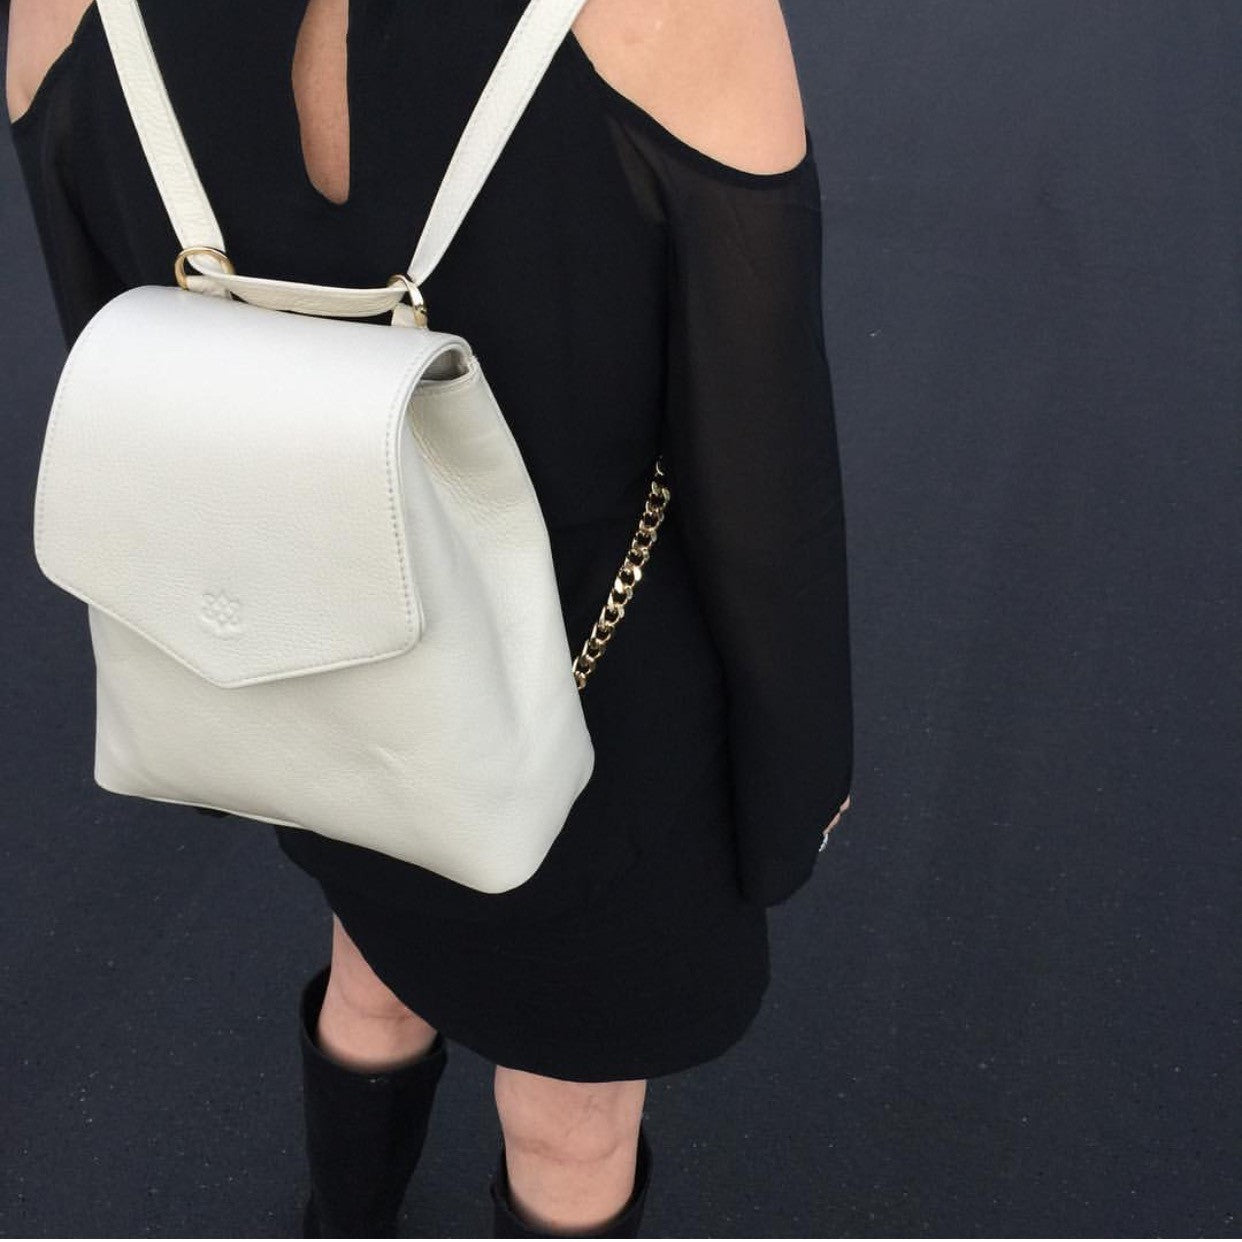 KYLA JOY The Perfect Luxury Handbag of The Season